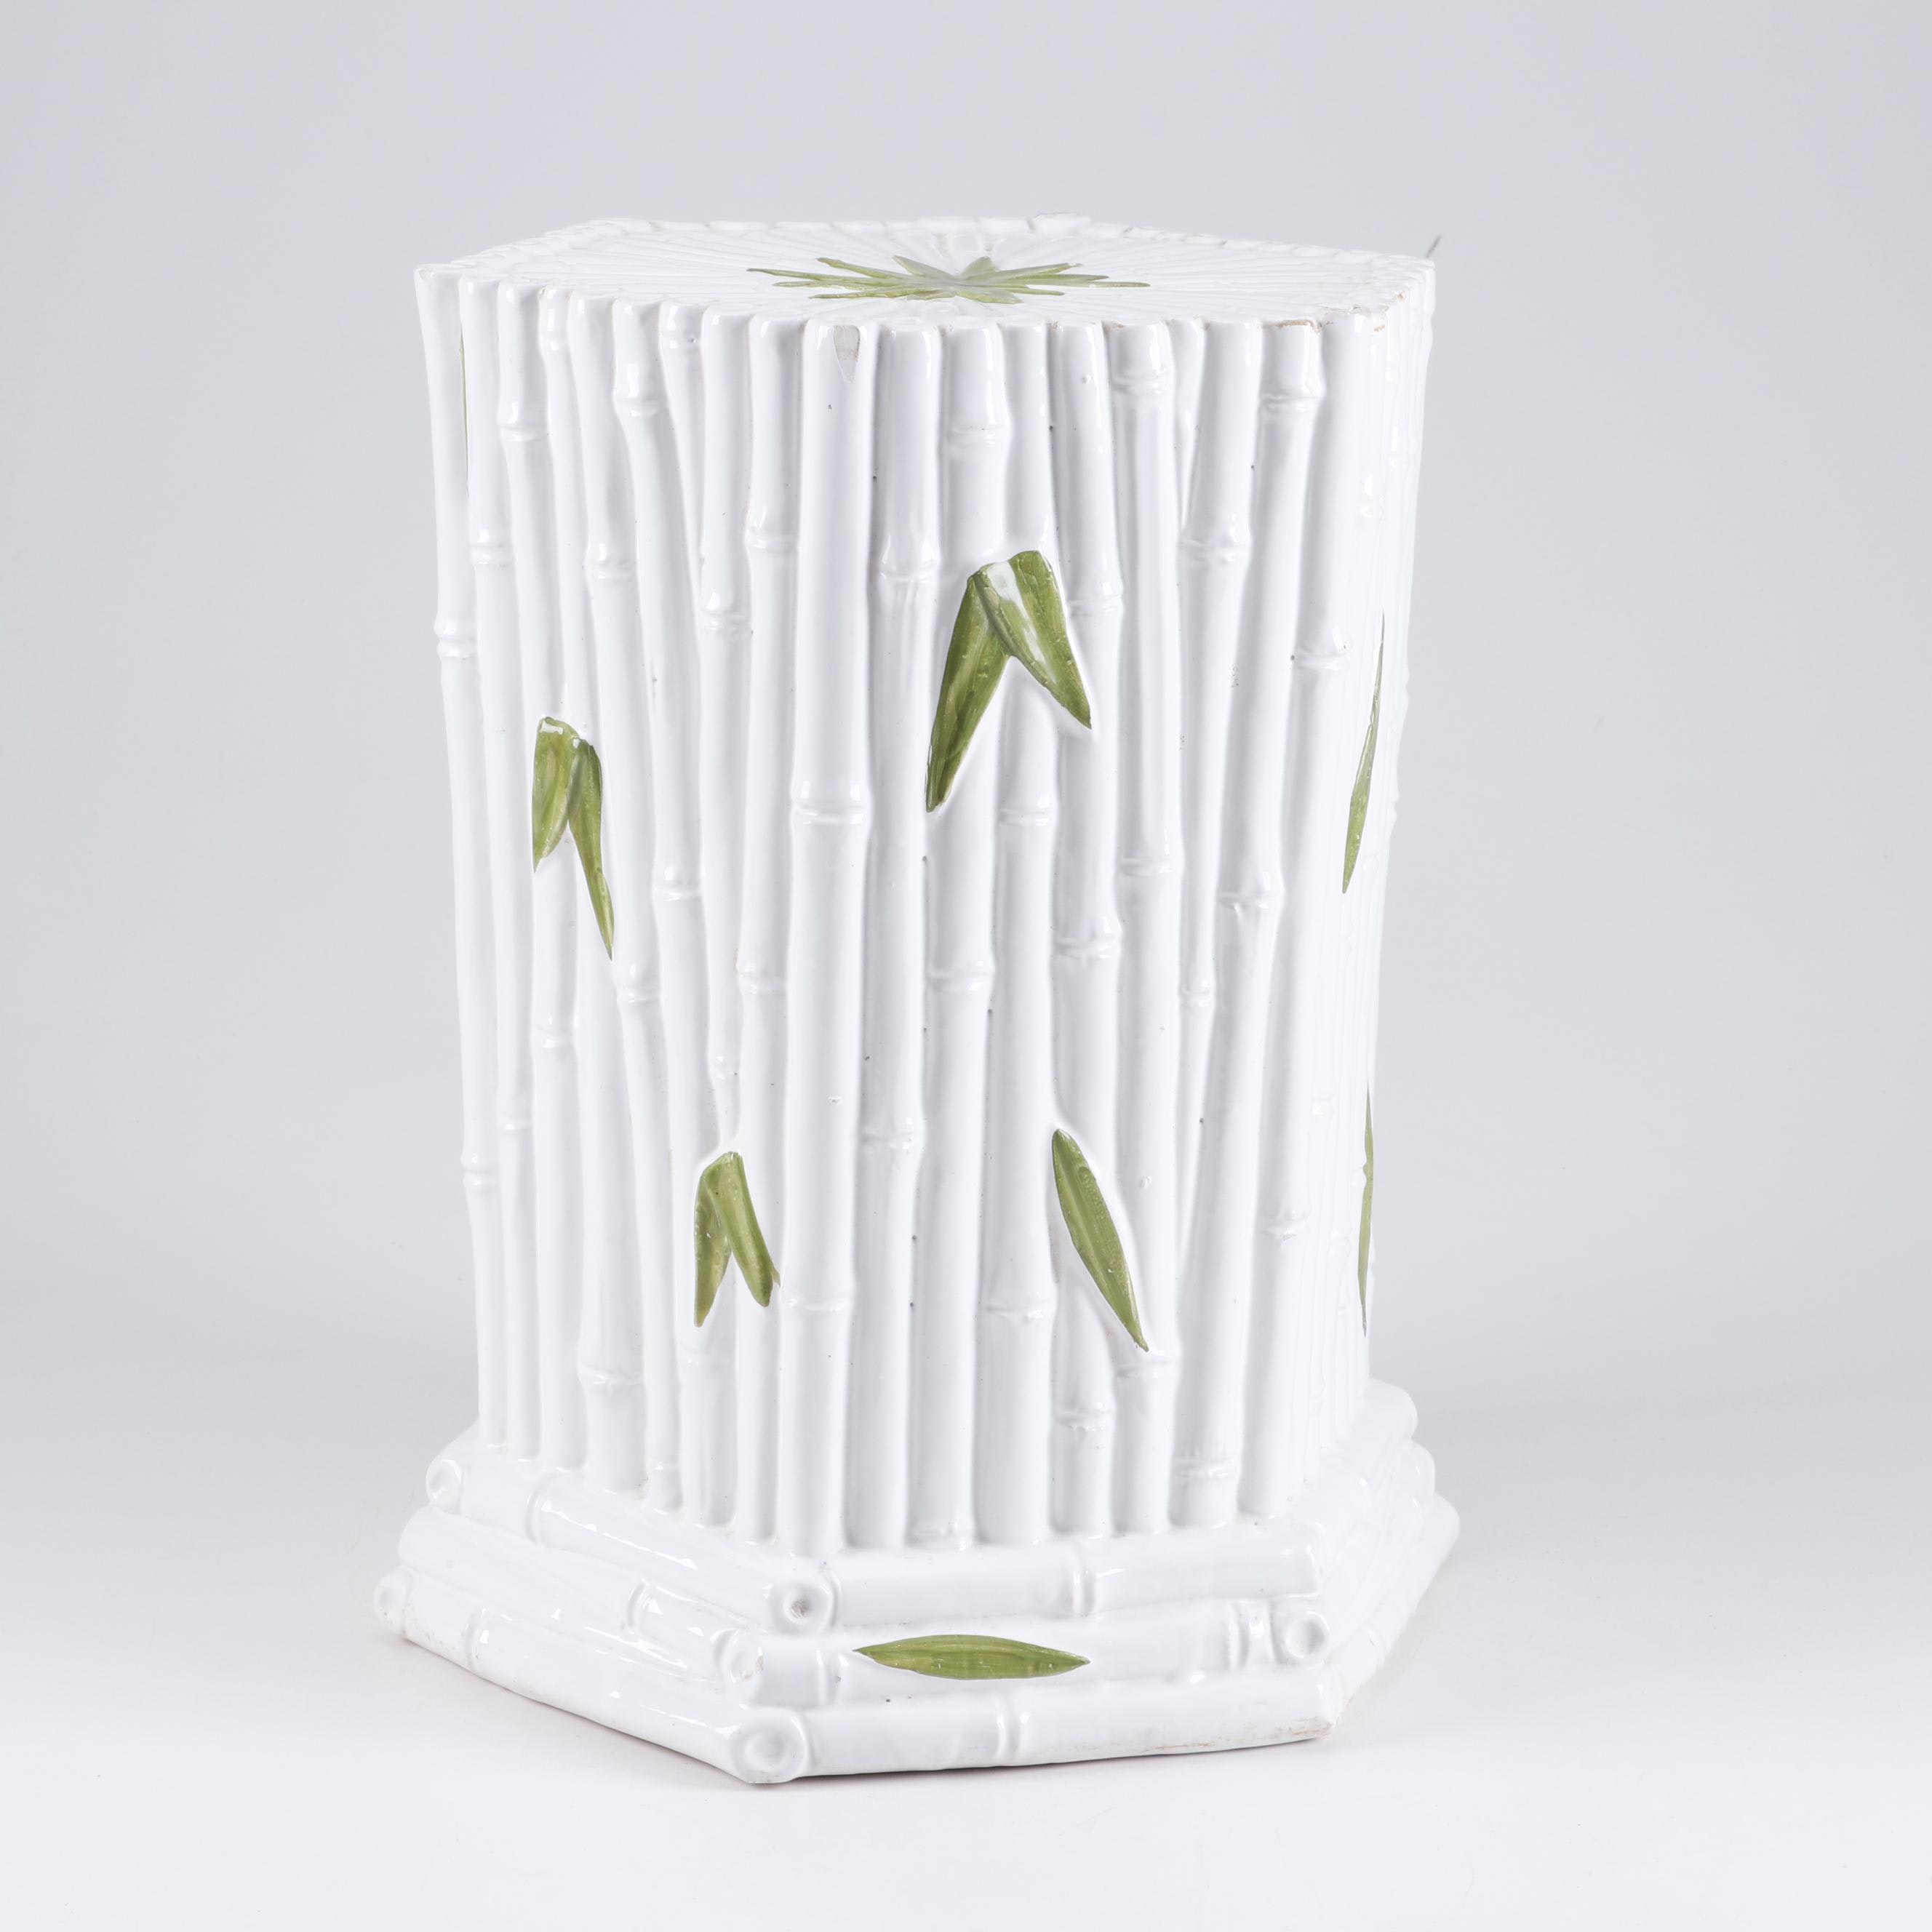 Painted Ceramic Faux Bamboo Garden Stool, Contemporary